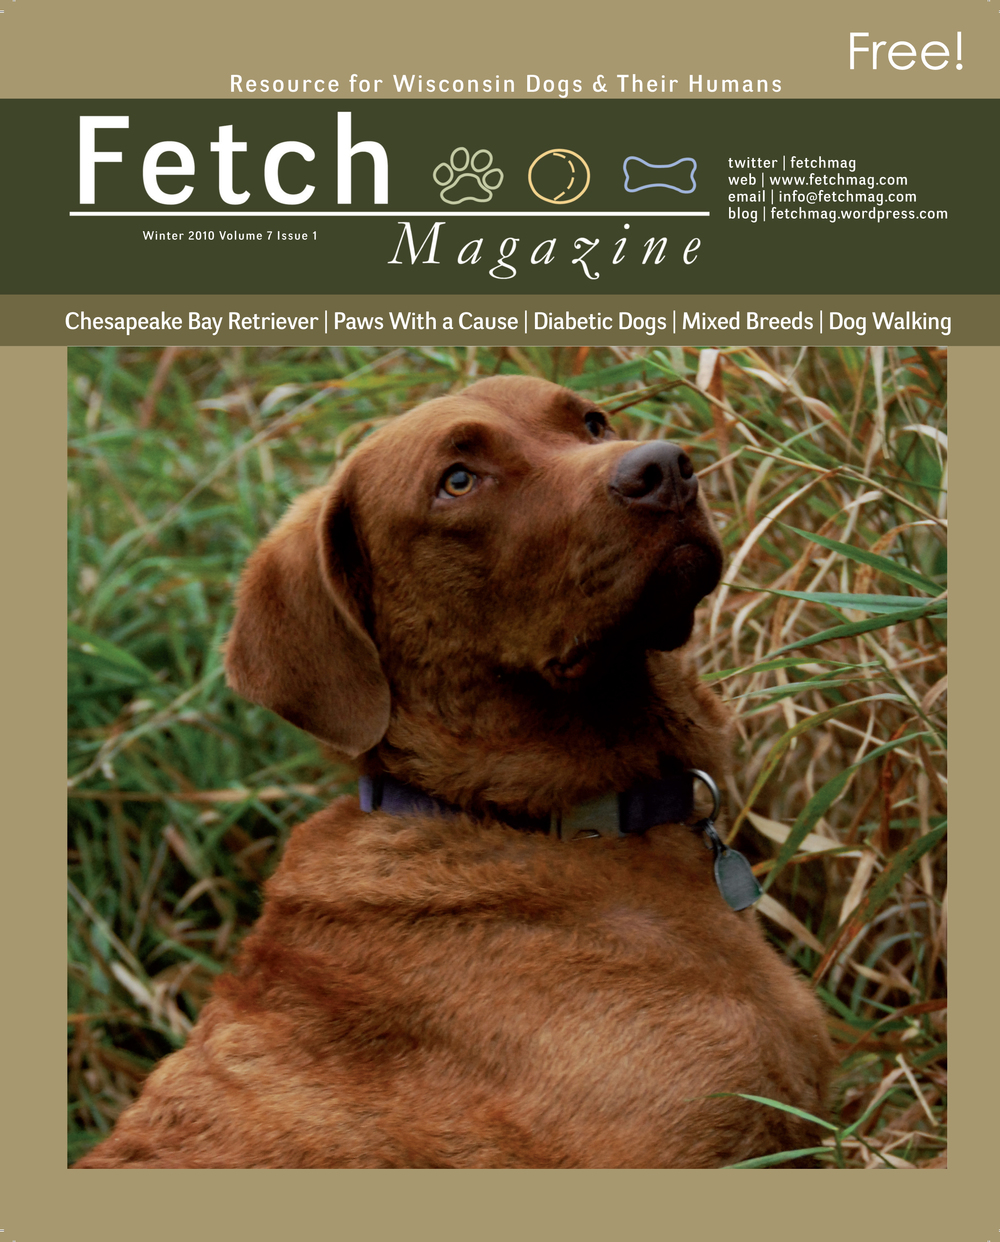 Fetch+2010+Winter+Final+Pages+Revised+1-40+v3-1.jpg